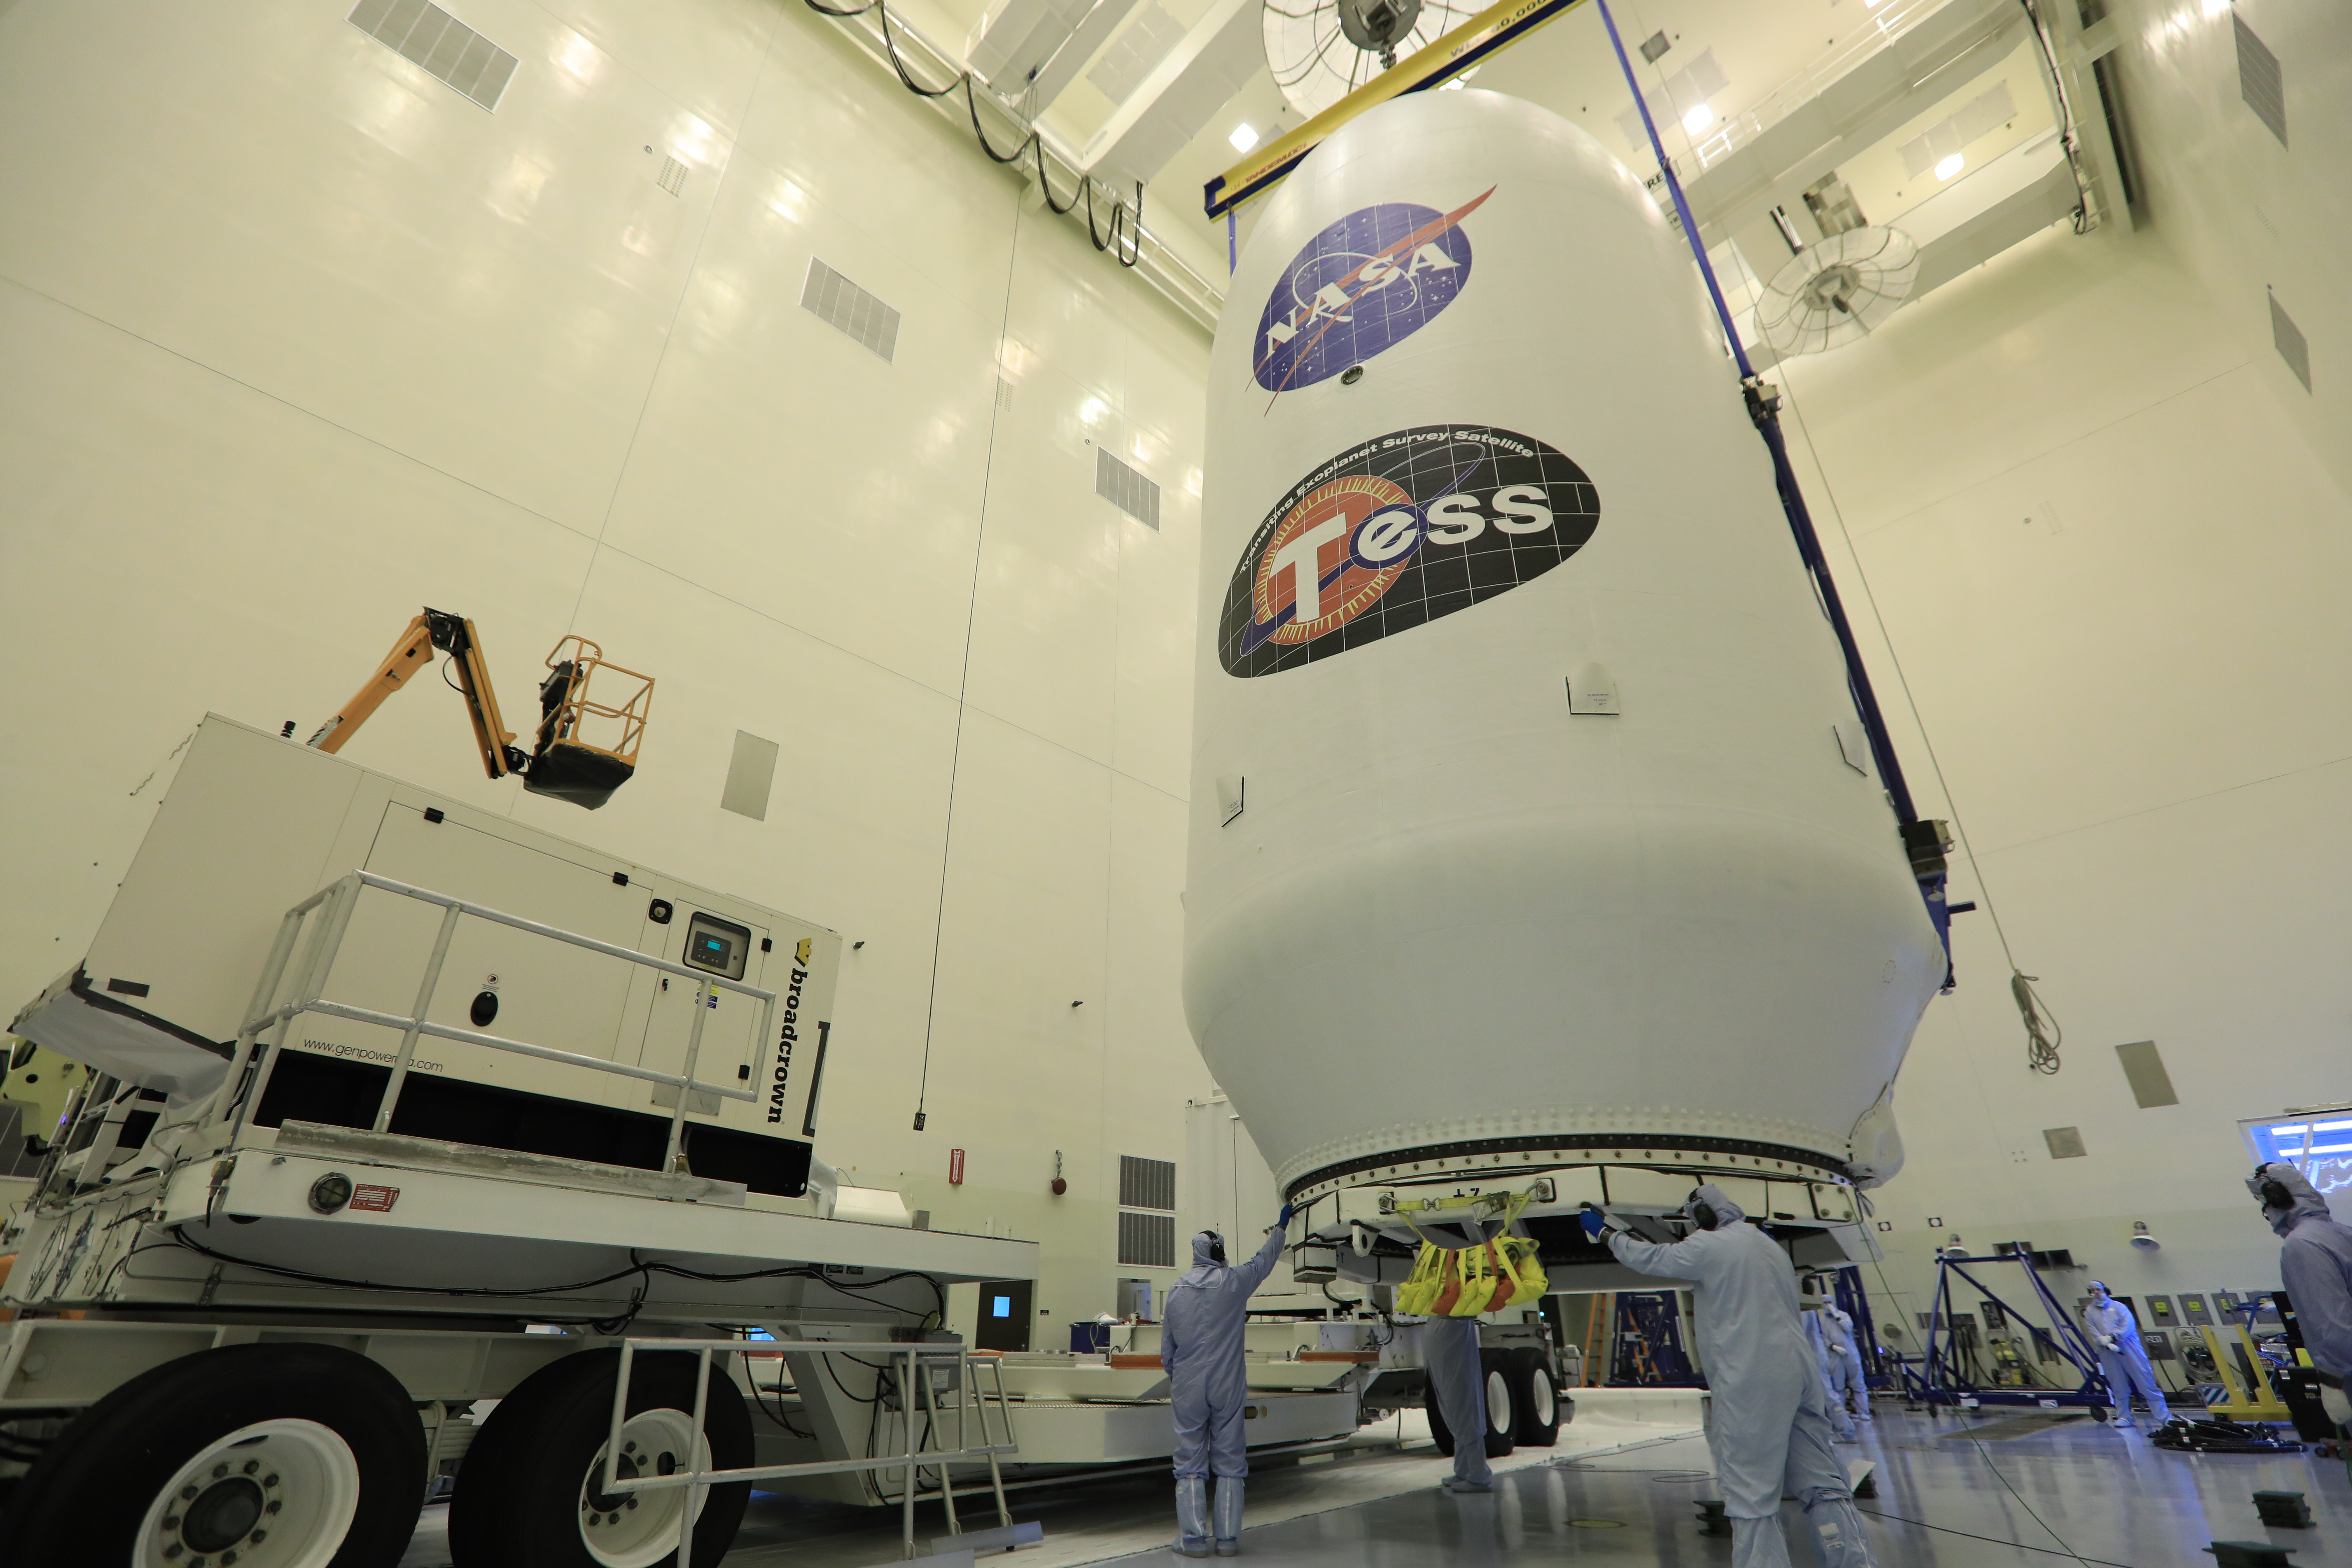 Inside the Payload Hazardous Servicing Facility at NASA's Kennedy Space Center in Florida, technicians assist as the SpaceX payload fairing containing the agency's Transiting Exoplanet Survey Satellite (TESS) is moved by crane to a transporter.